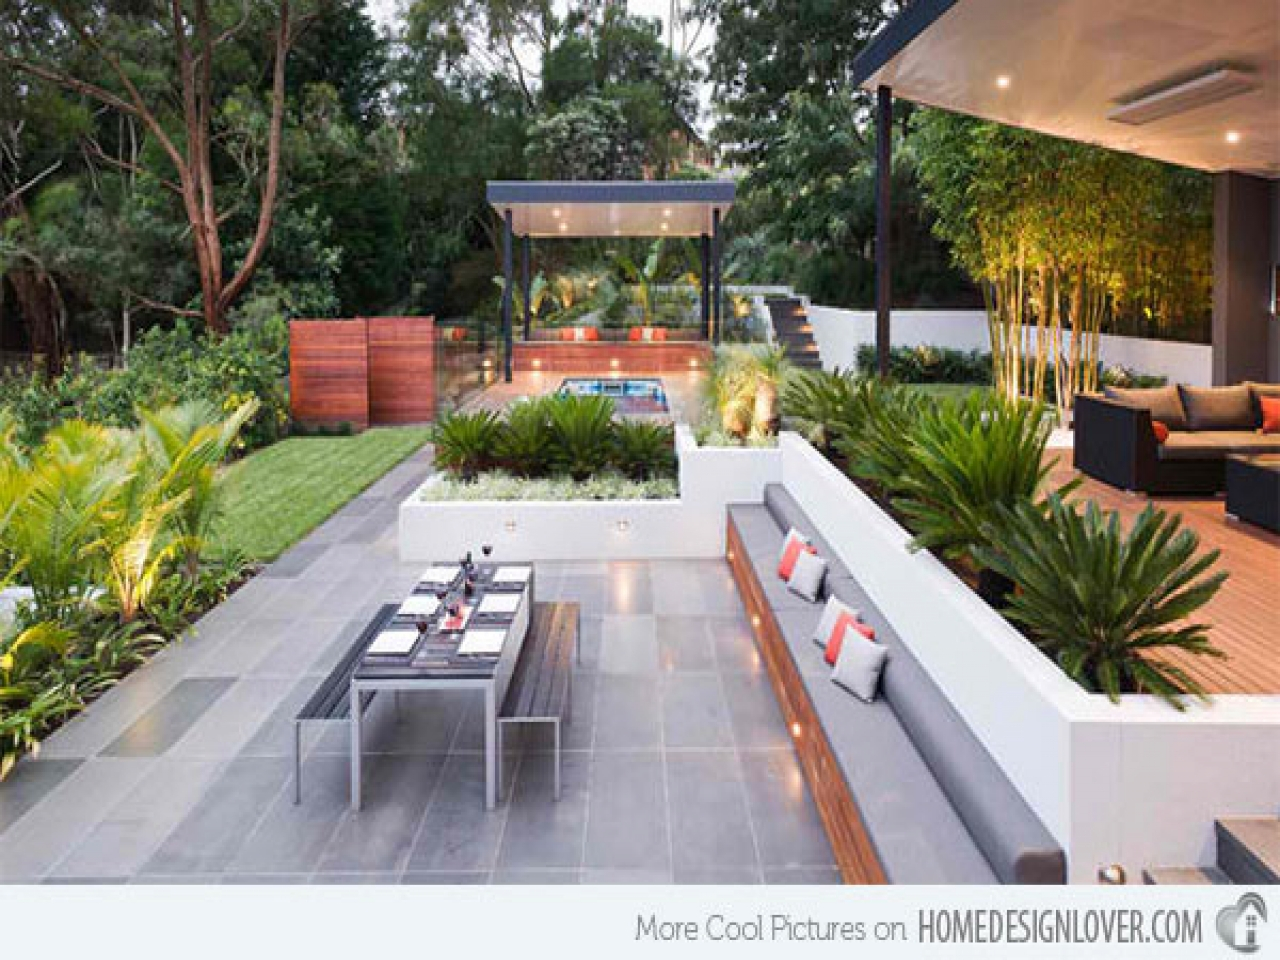 Best Top Gallery Of Modern Backyard Ideas Daighter Magazine Photos regarding 15 Awesome Concepts of How to Make Modern Backyard Design Ideas